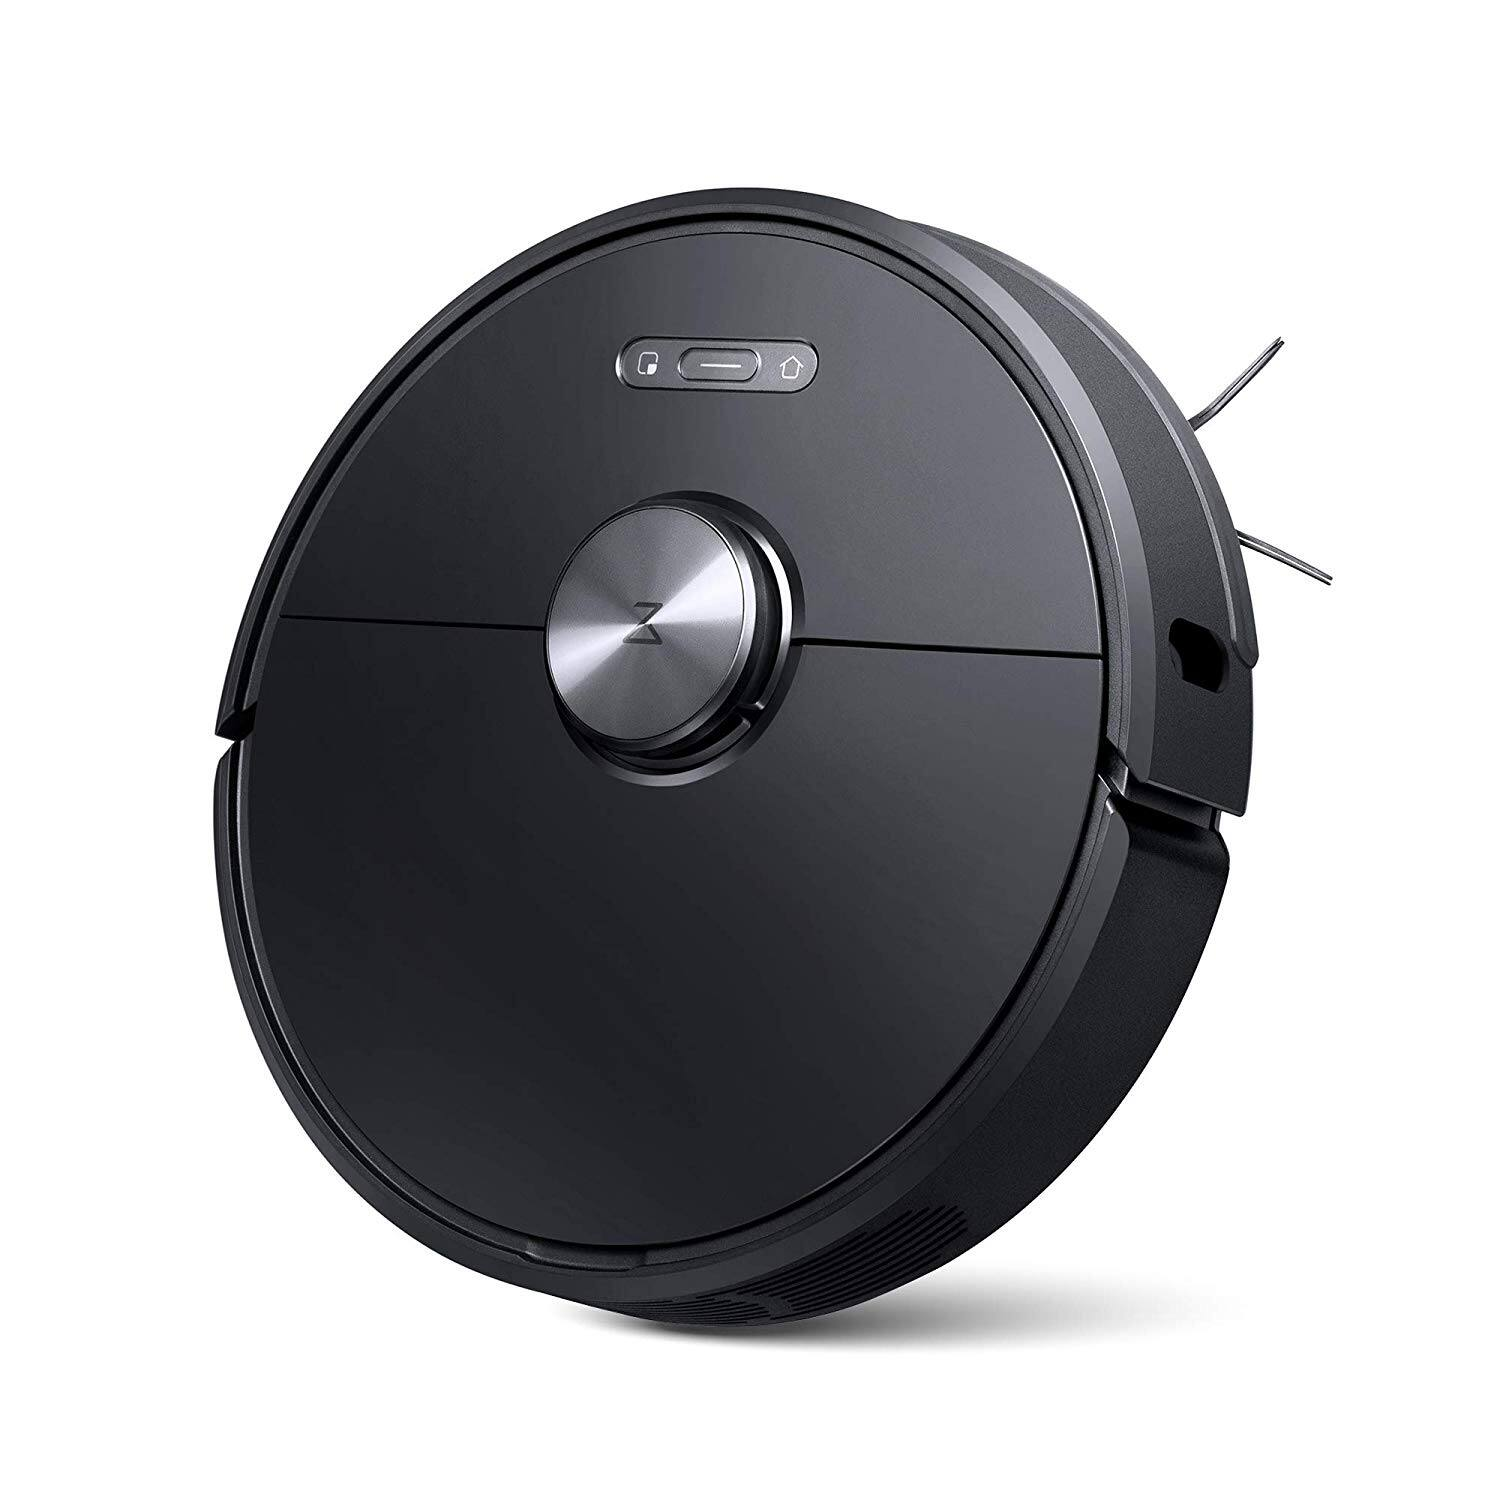 Roborock S6 Robot Vacuum, Robotic Vacuum Cleaner and Mop with Adaptive Routing $579.99